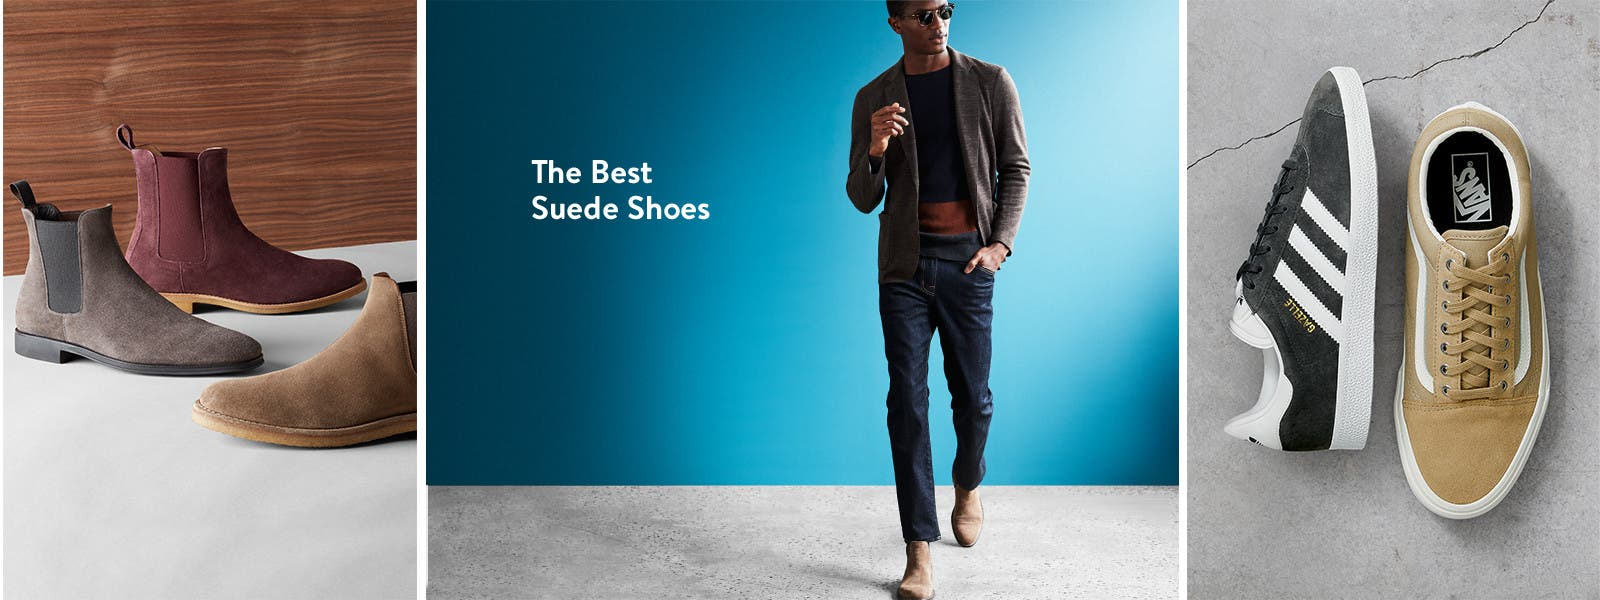 Suede boots and sneakers for men.